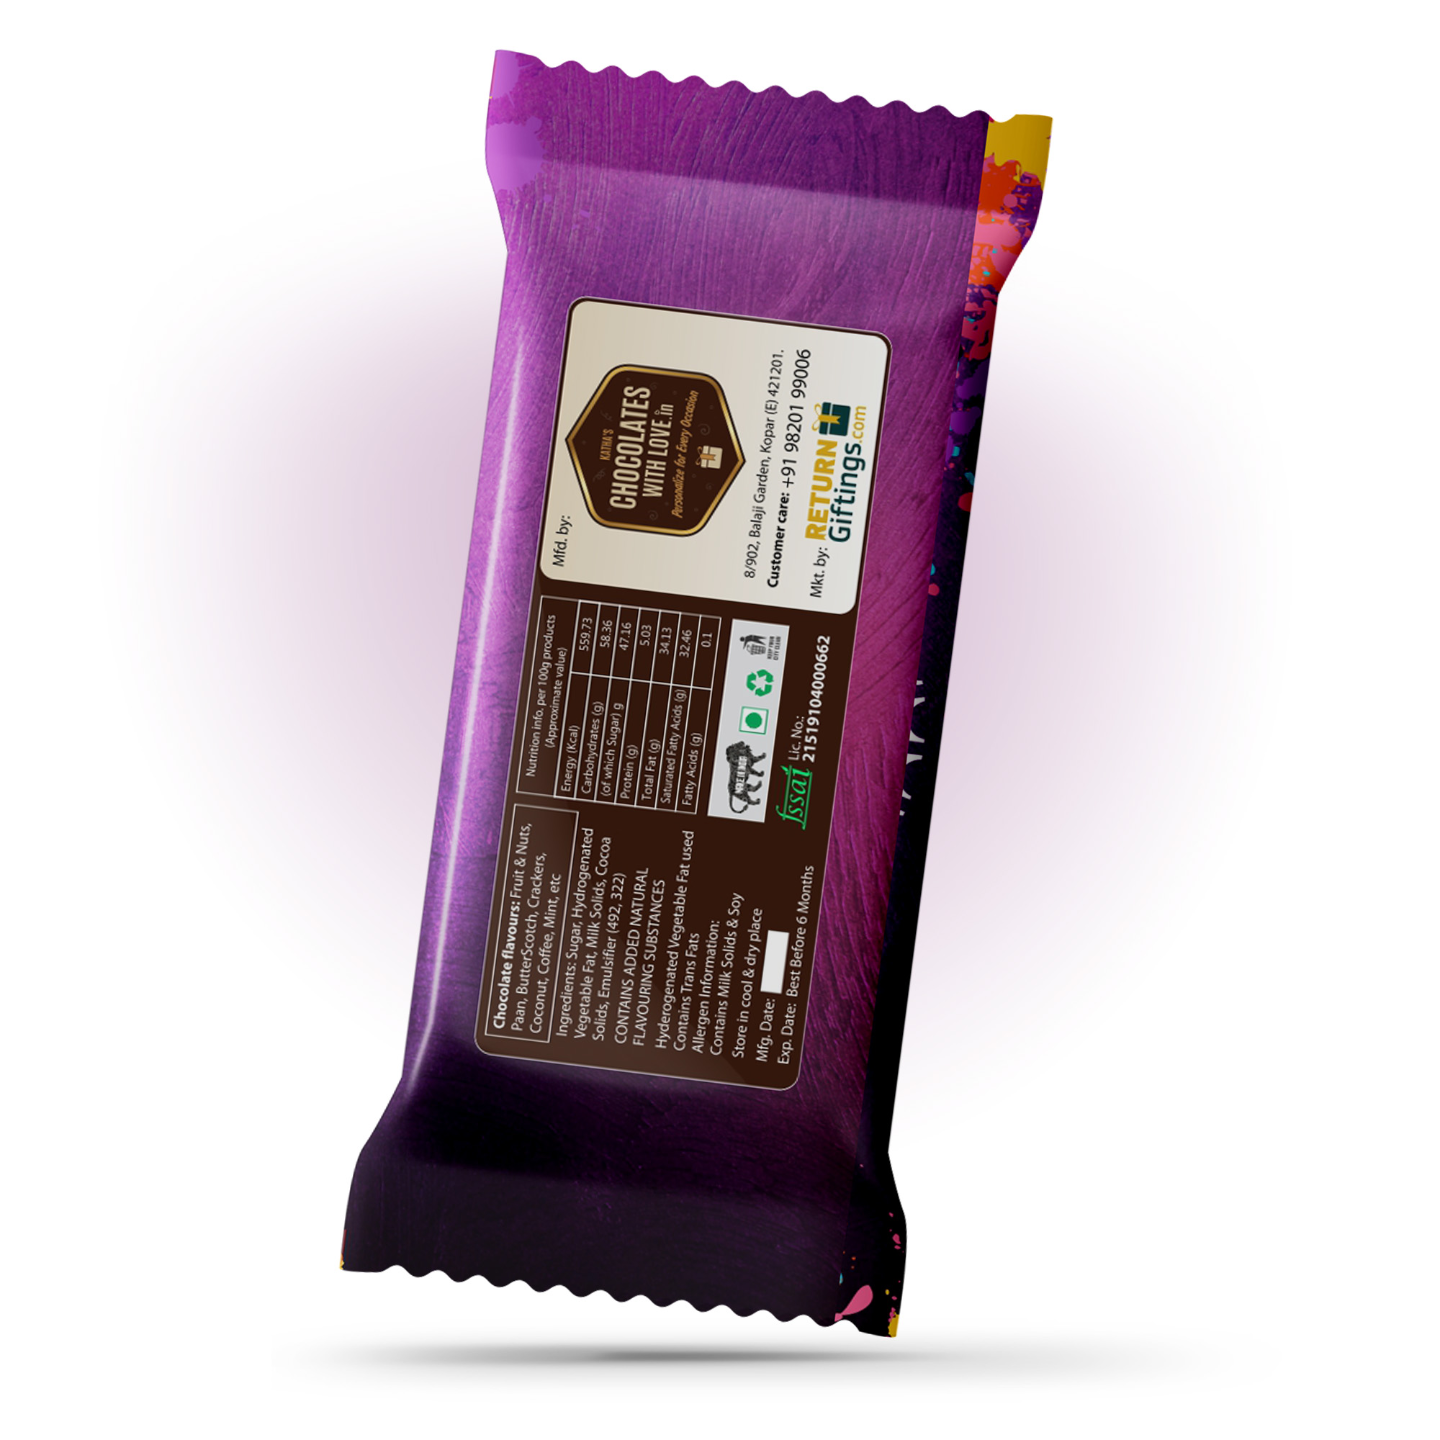 Holi Gift, Personalize Chocolate Bar 100g